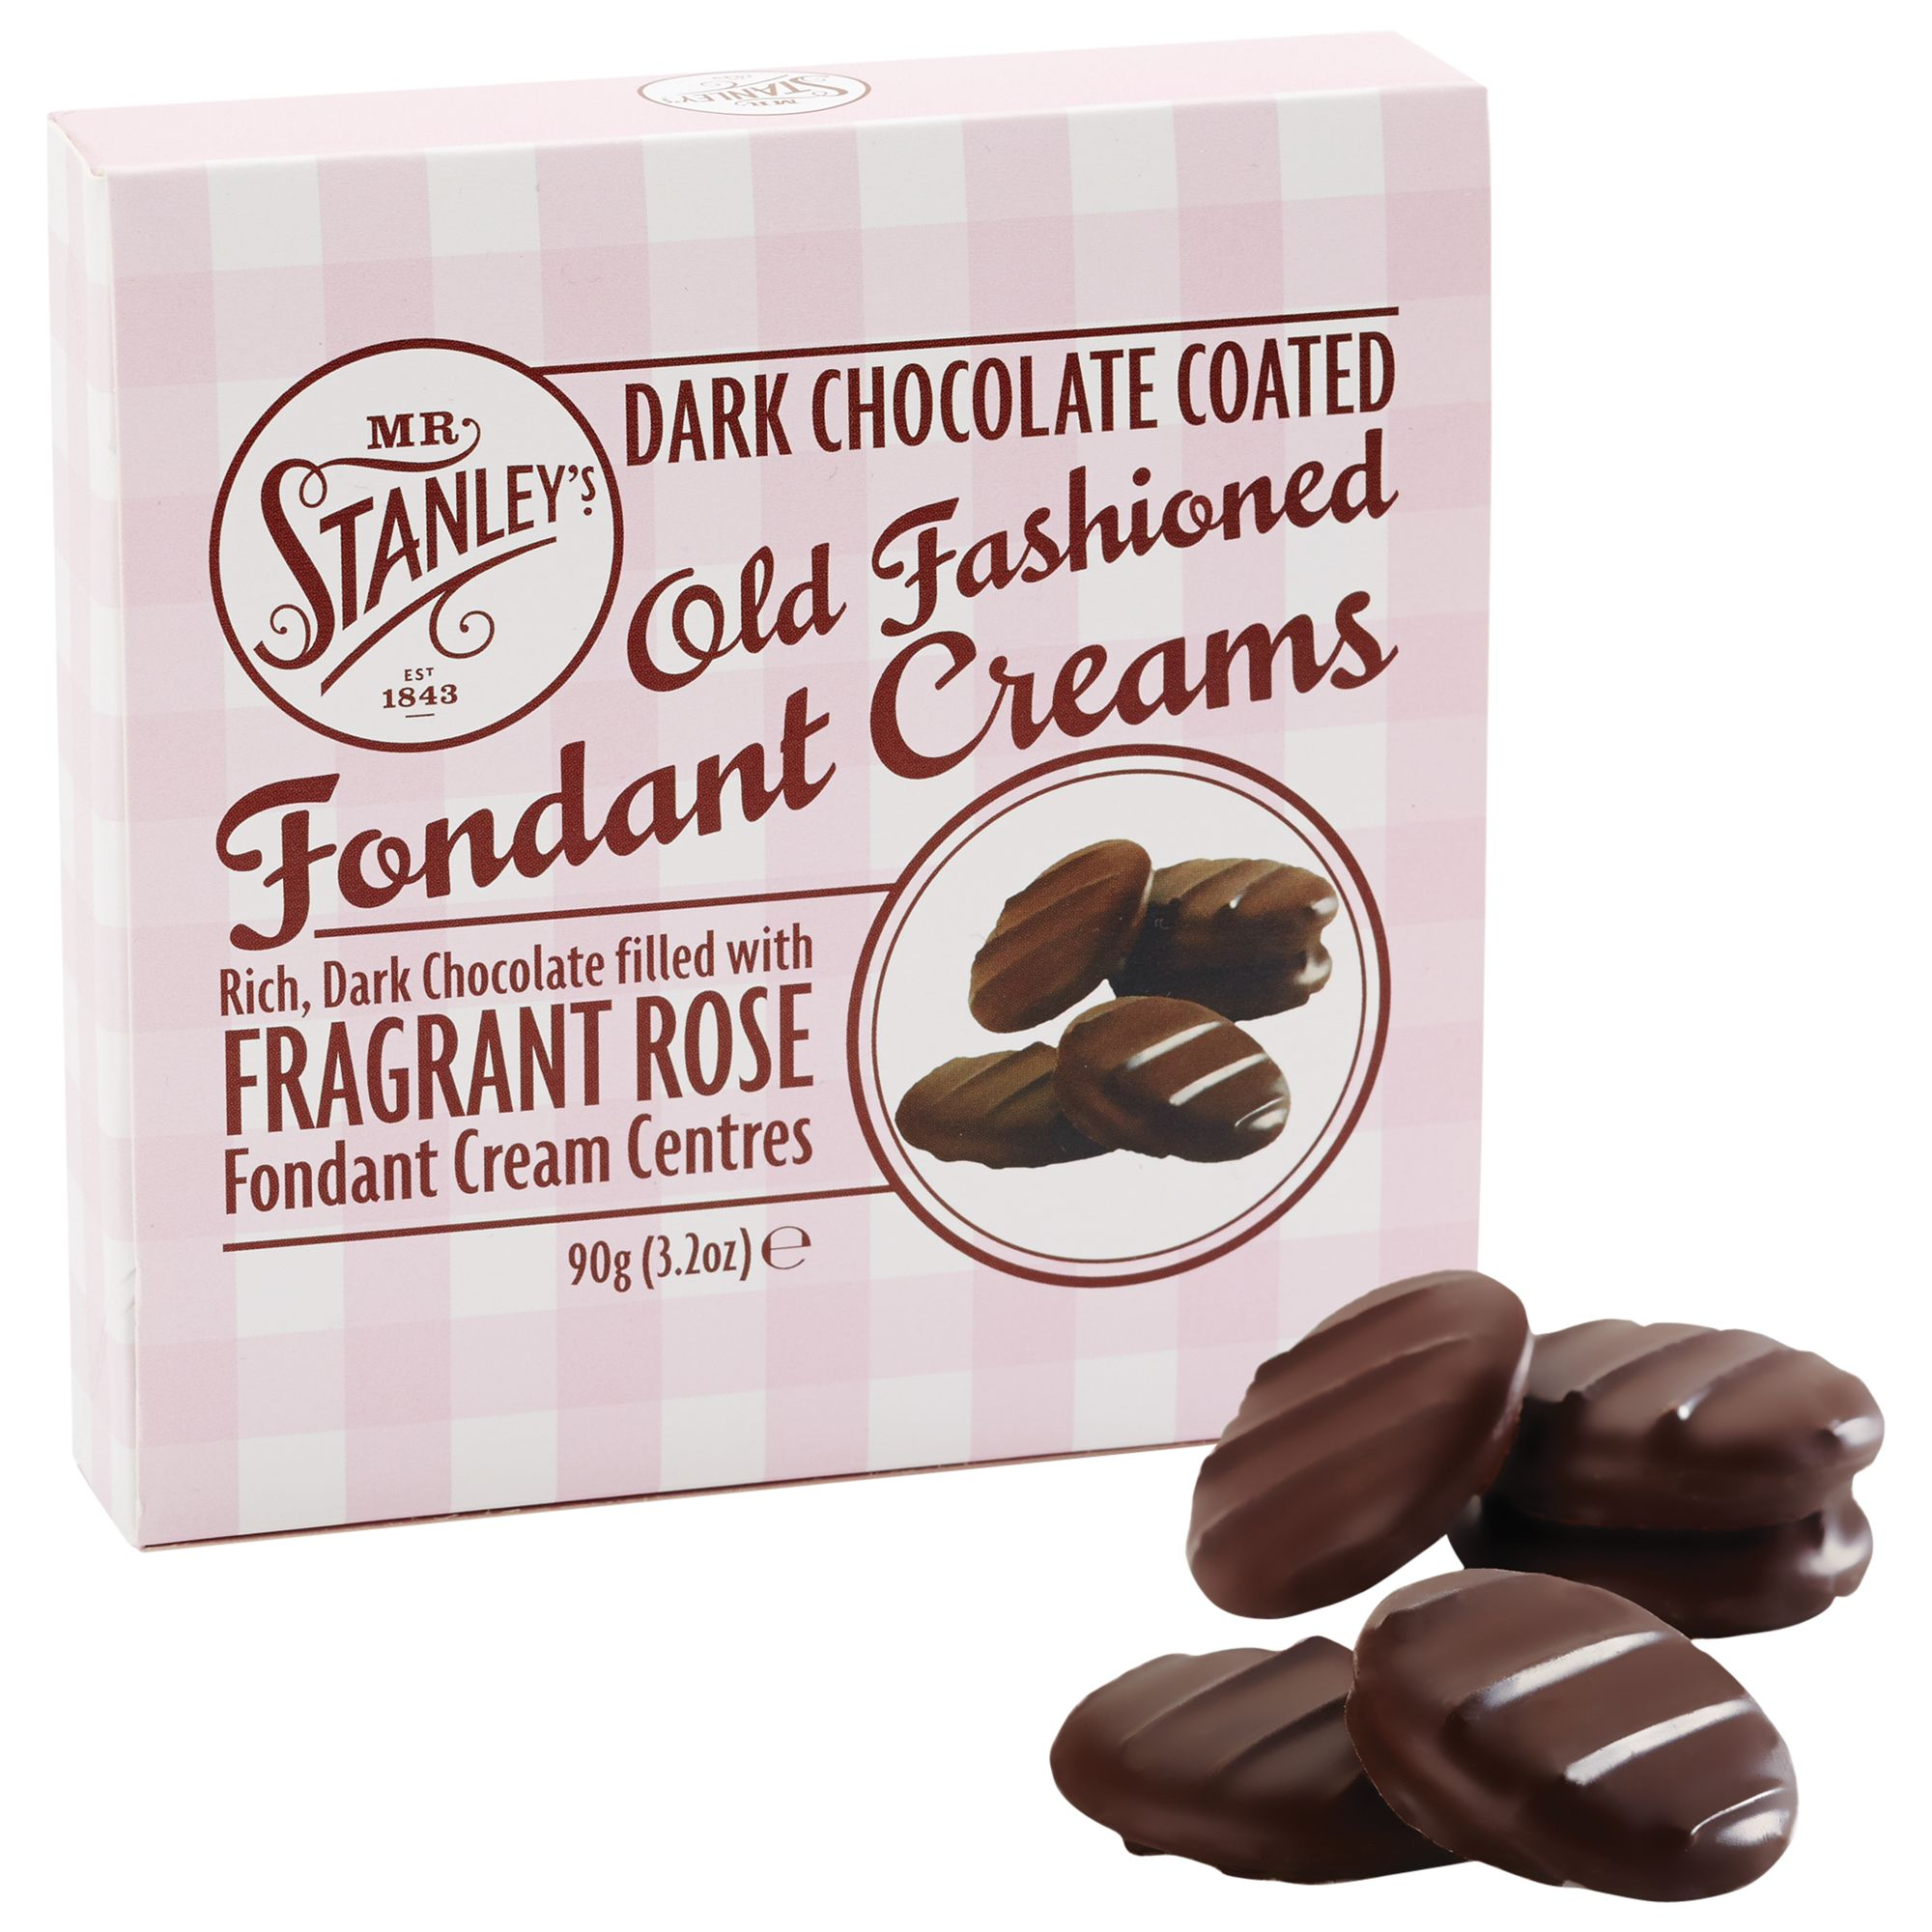 Mr Stanley's Mr Stanley's Rose Chocolate Fondant Creams, 90g